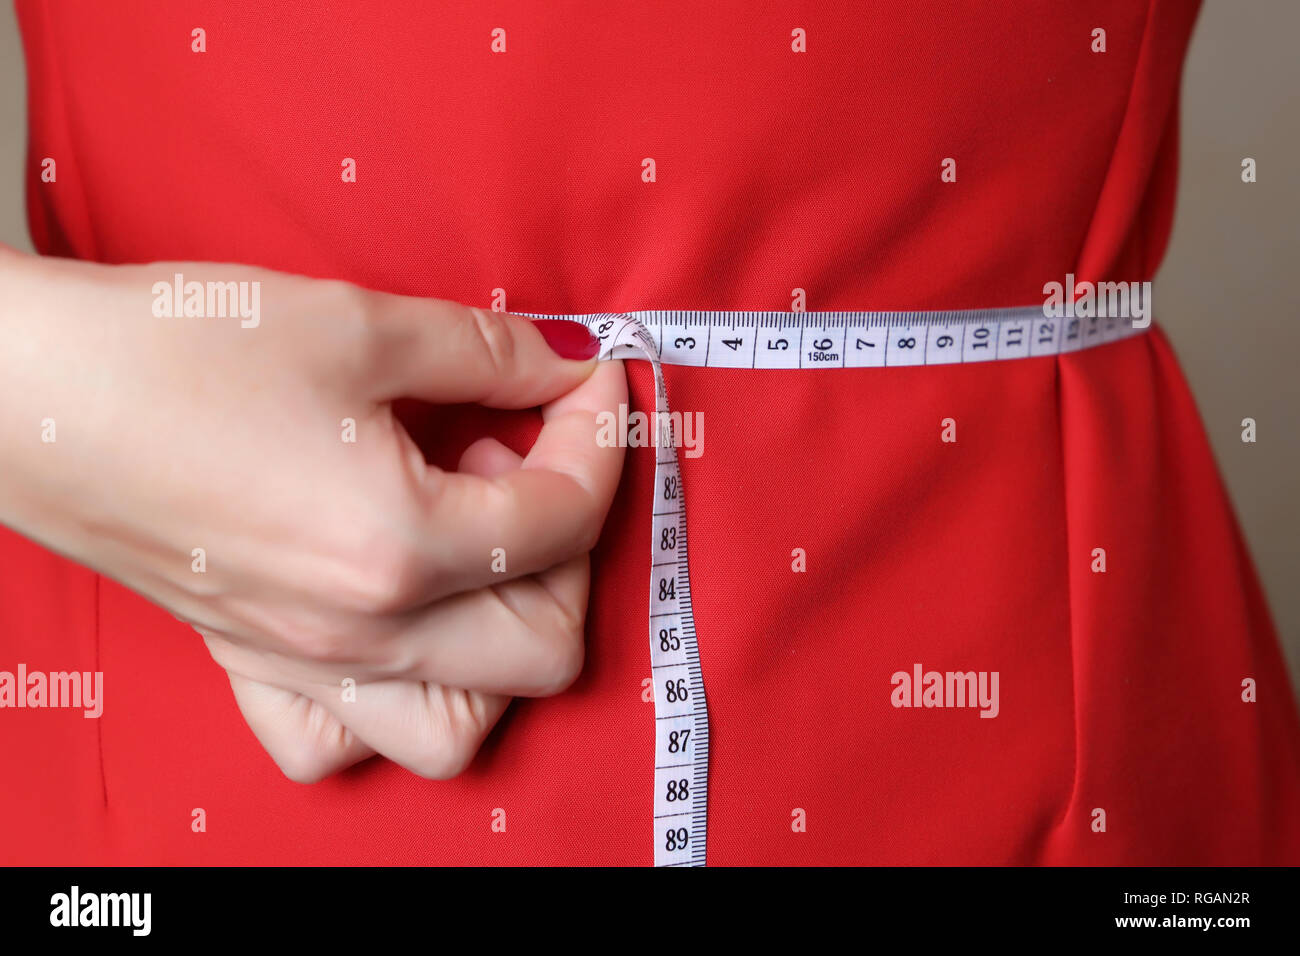 Girl in red dress with measuring tape around the waist. Weight loss, slimming, diet concept, body care, fitting clothes - Stock Image